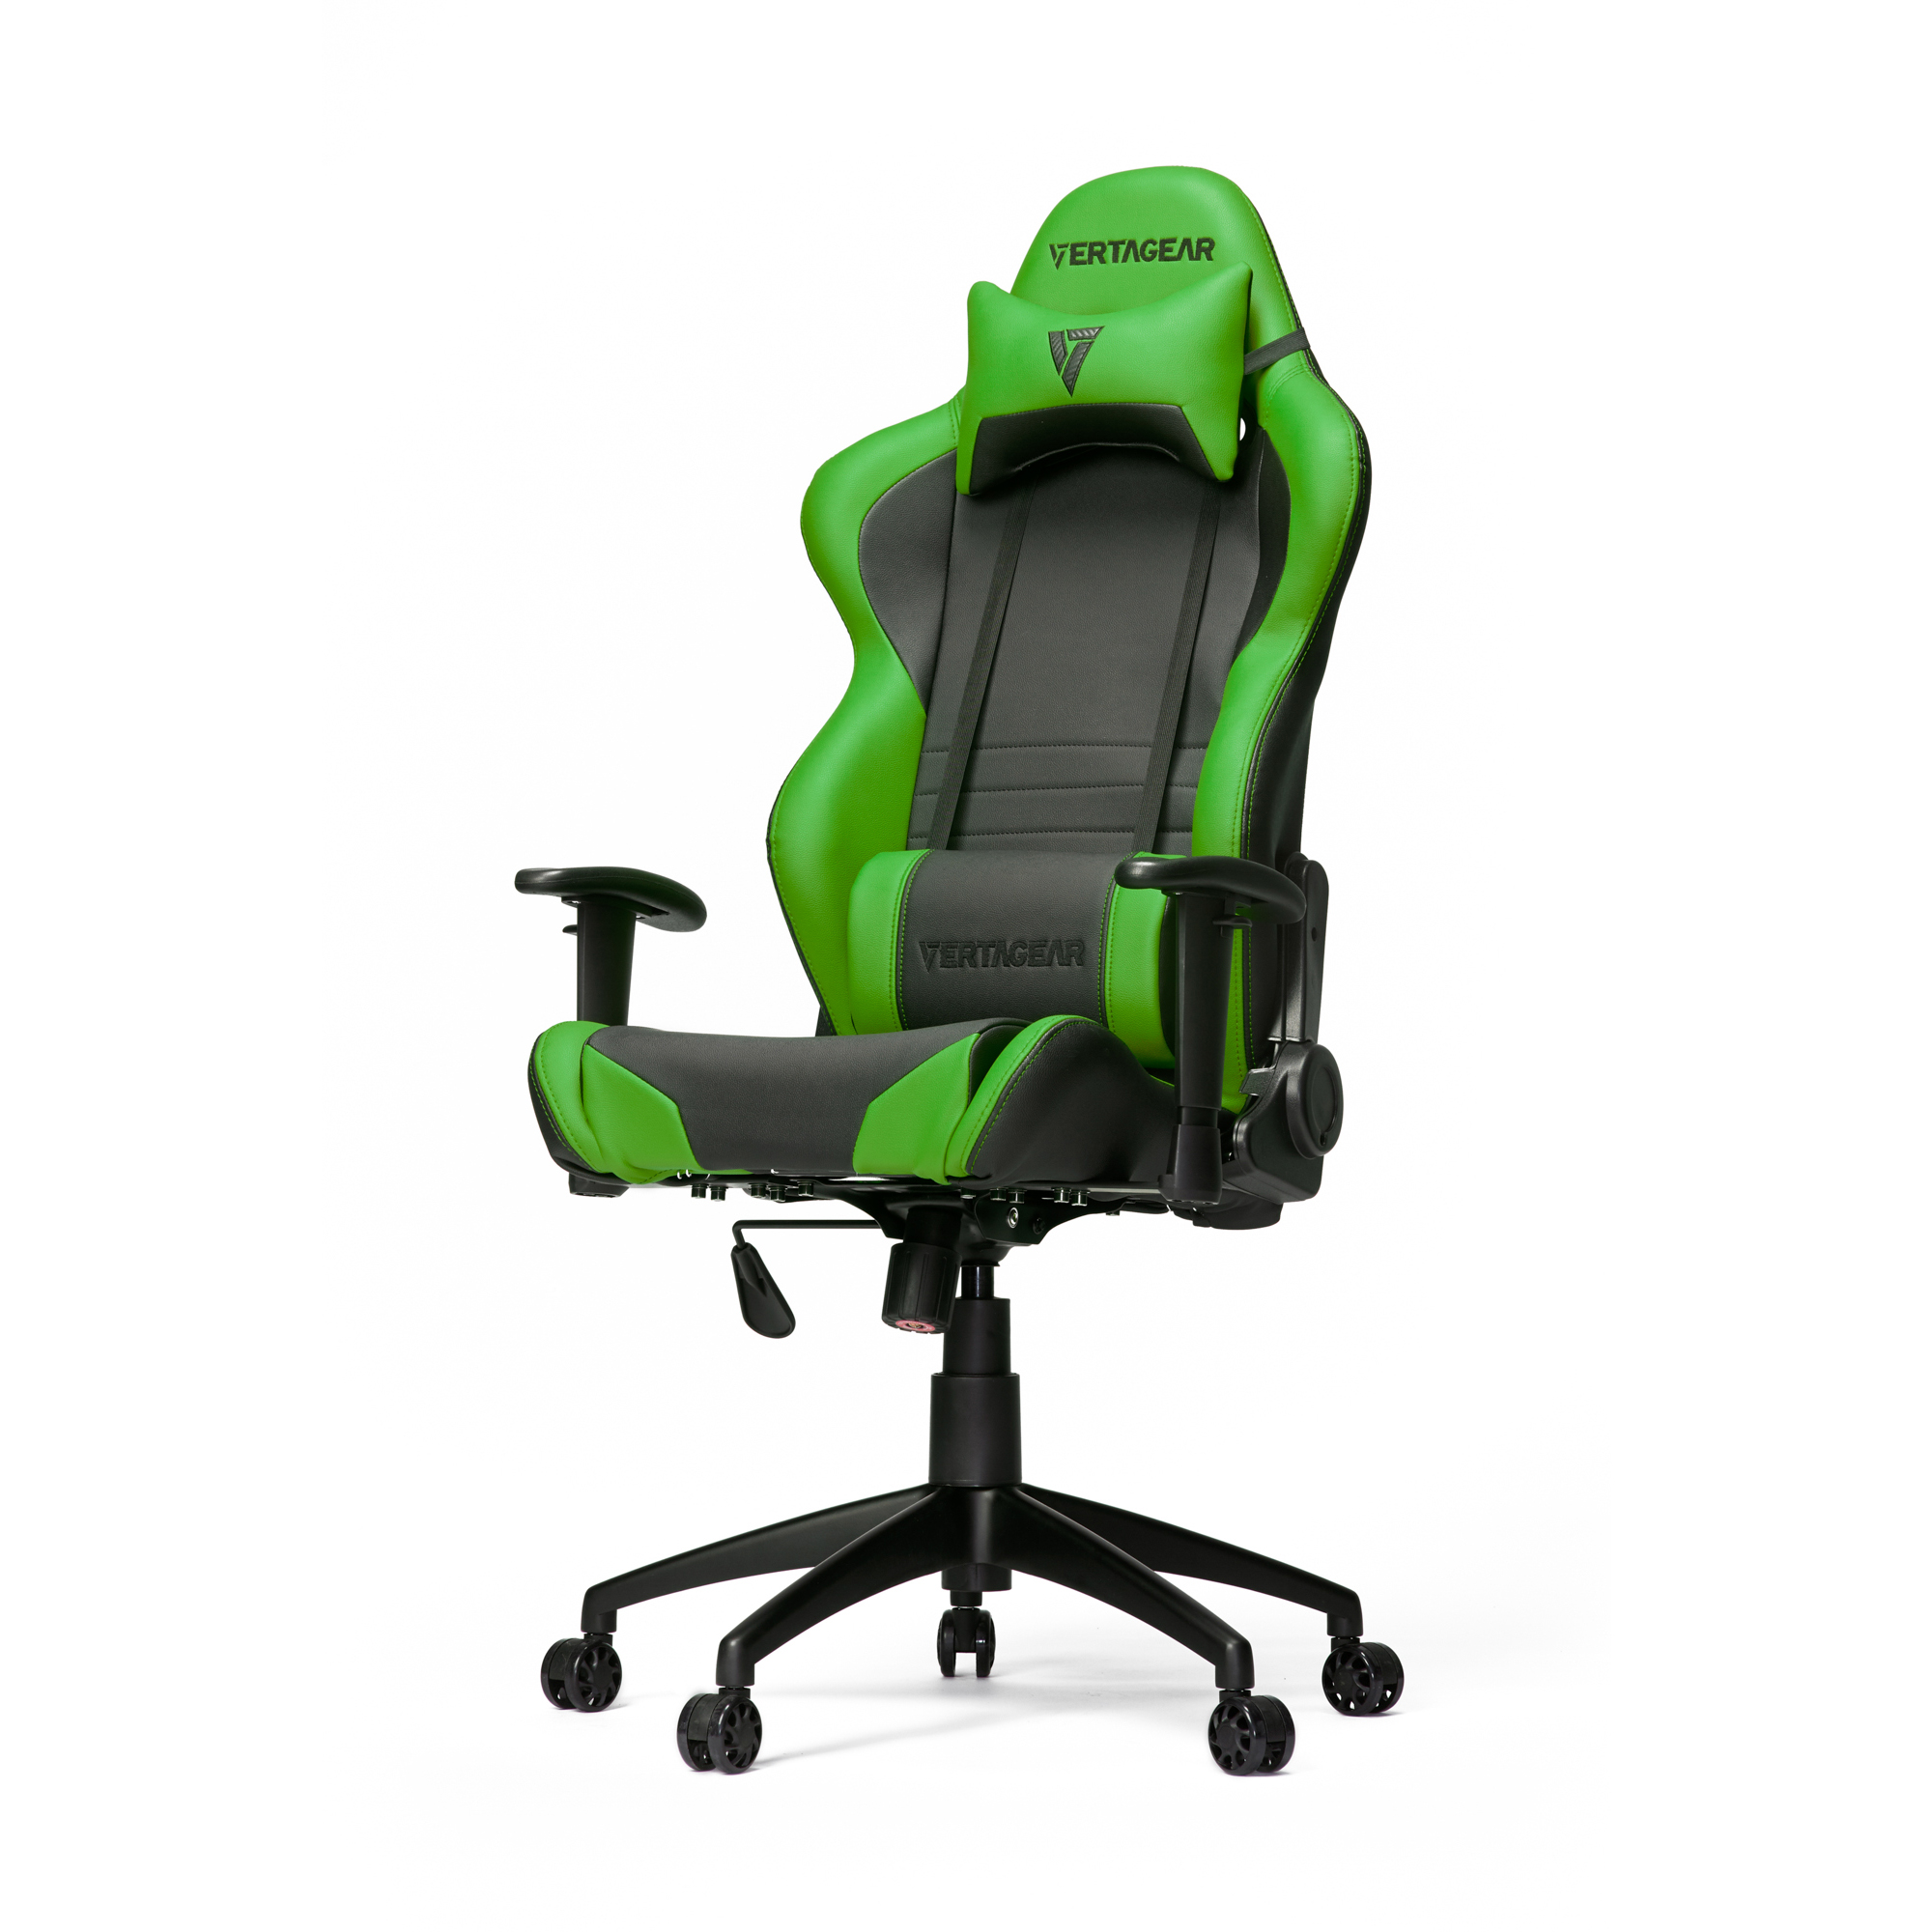 Overclockers UK Introduces Vertagear, A New Up And Coming